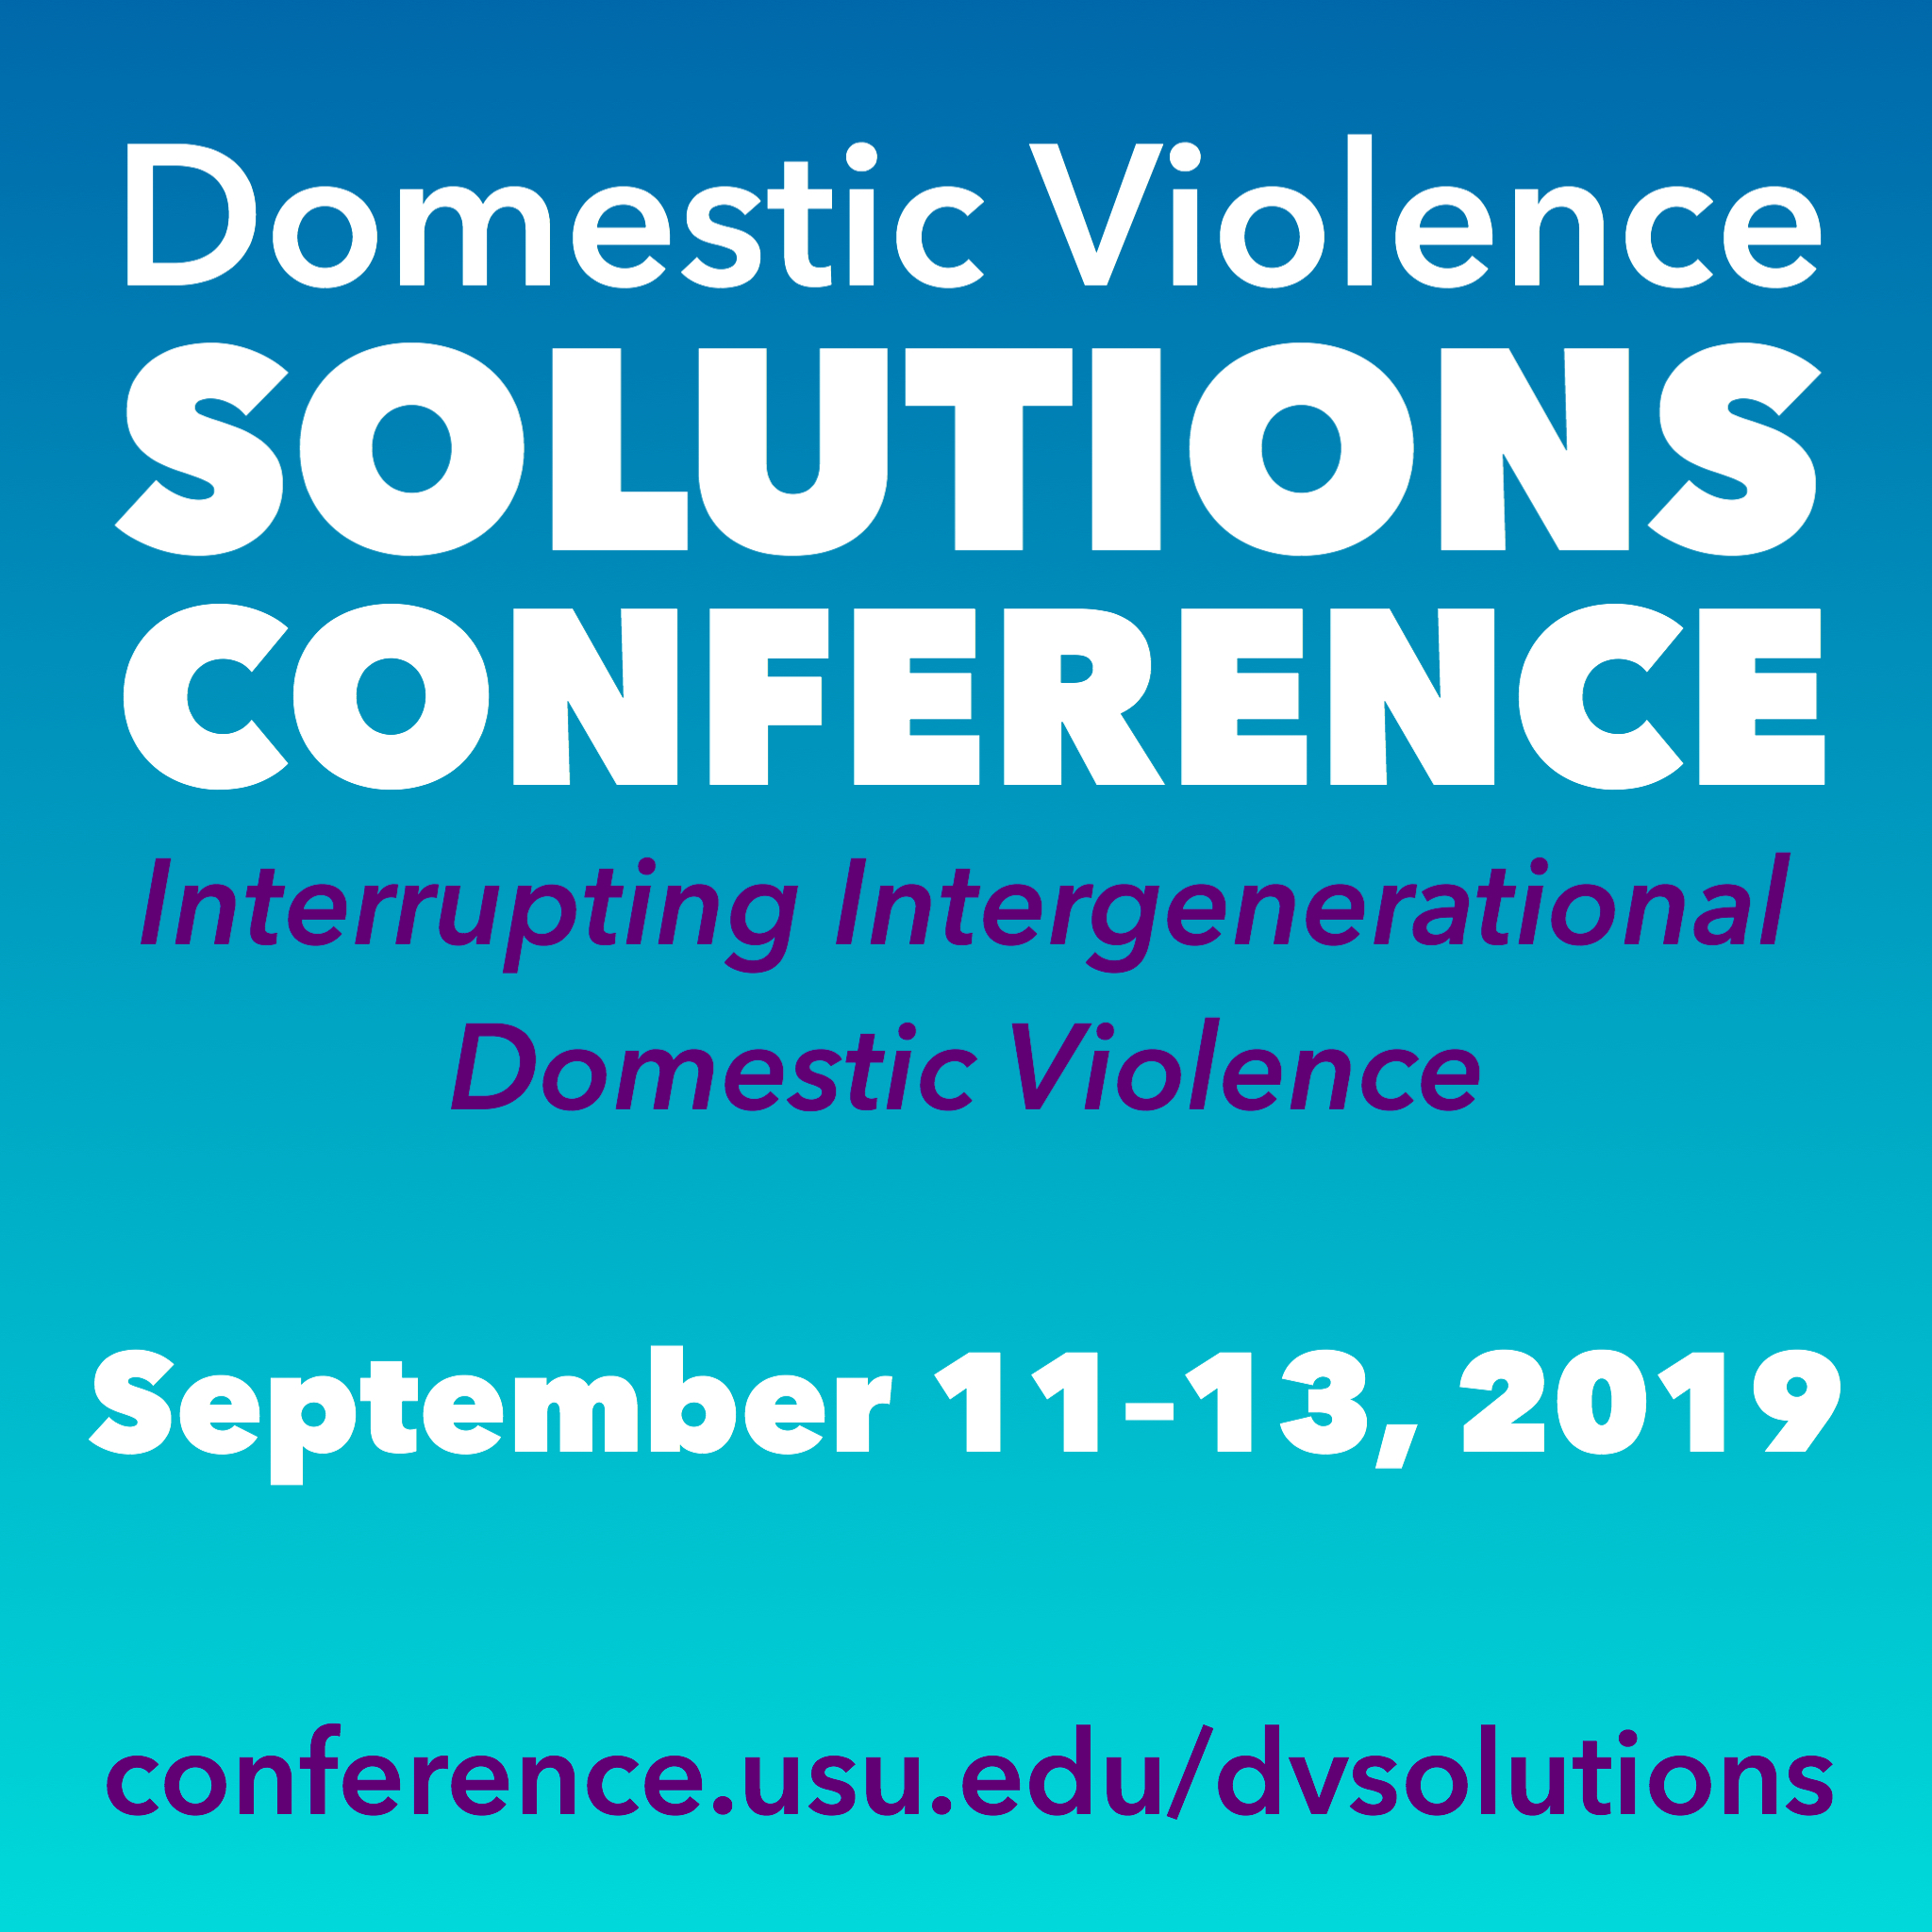 Domestic Violence Solutions: Interrupting Intergenerational Domestic VIolence